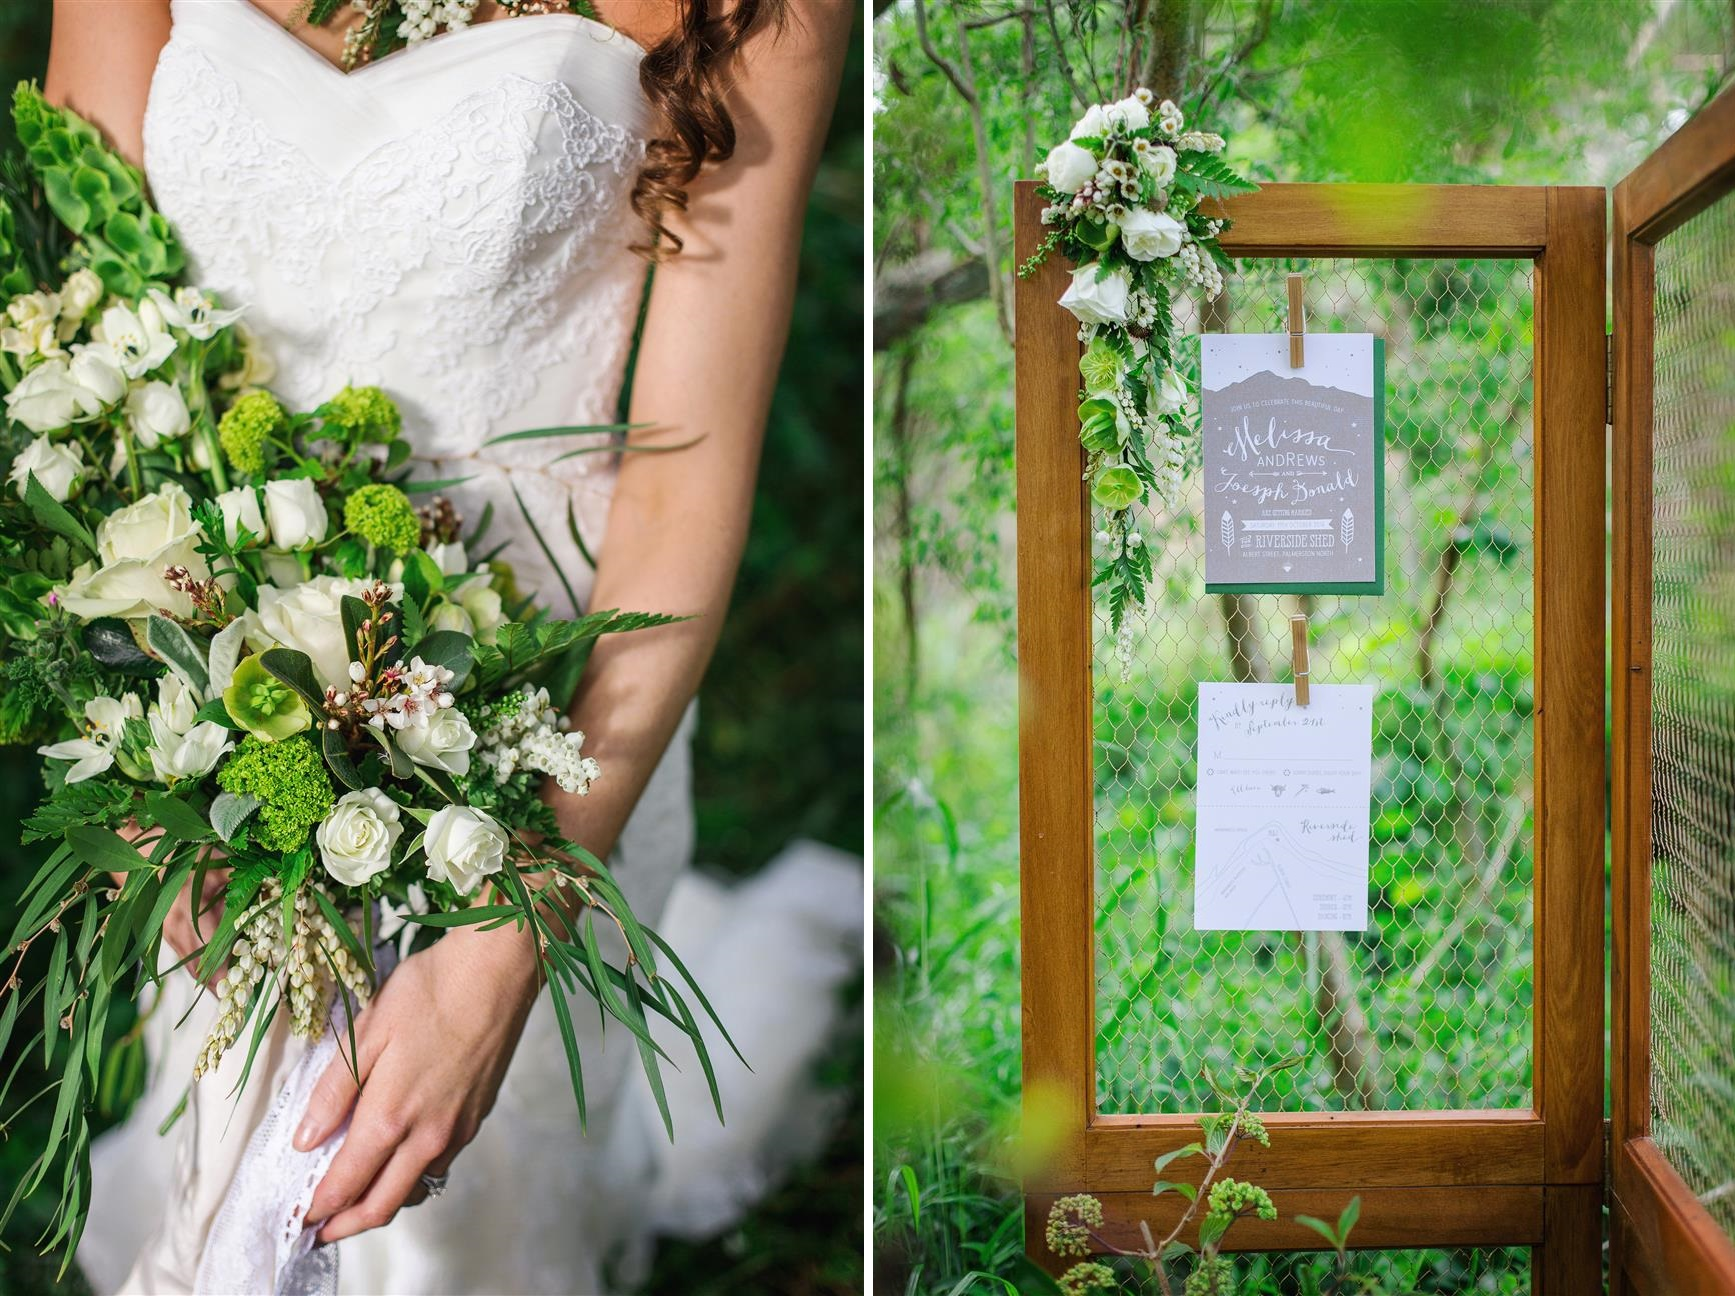 A Lush Spring Boho-Vintage Wedding Inspiration Shoot from Toni Larsen Photography